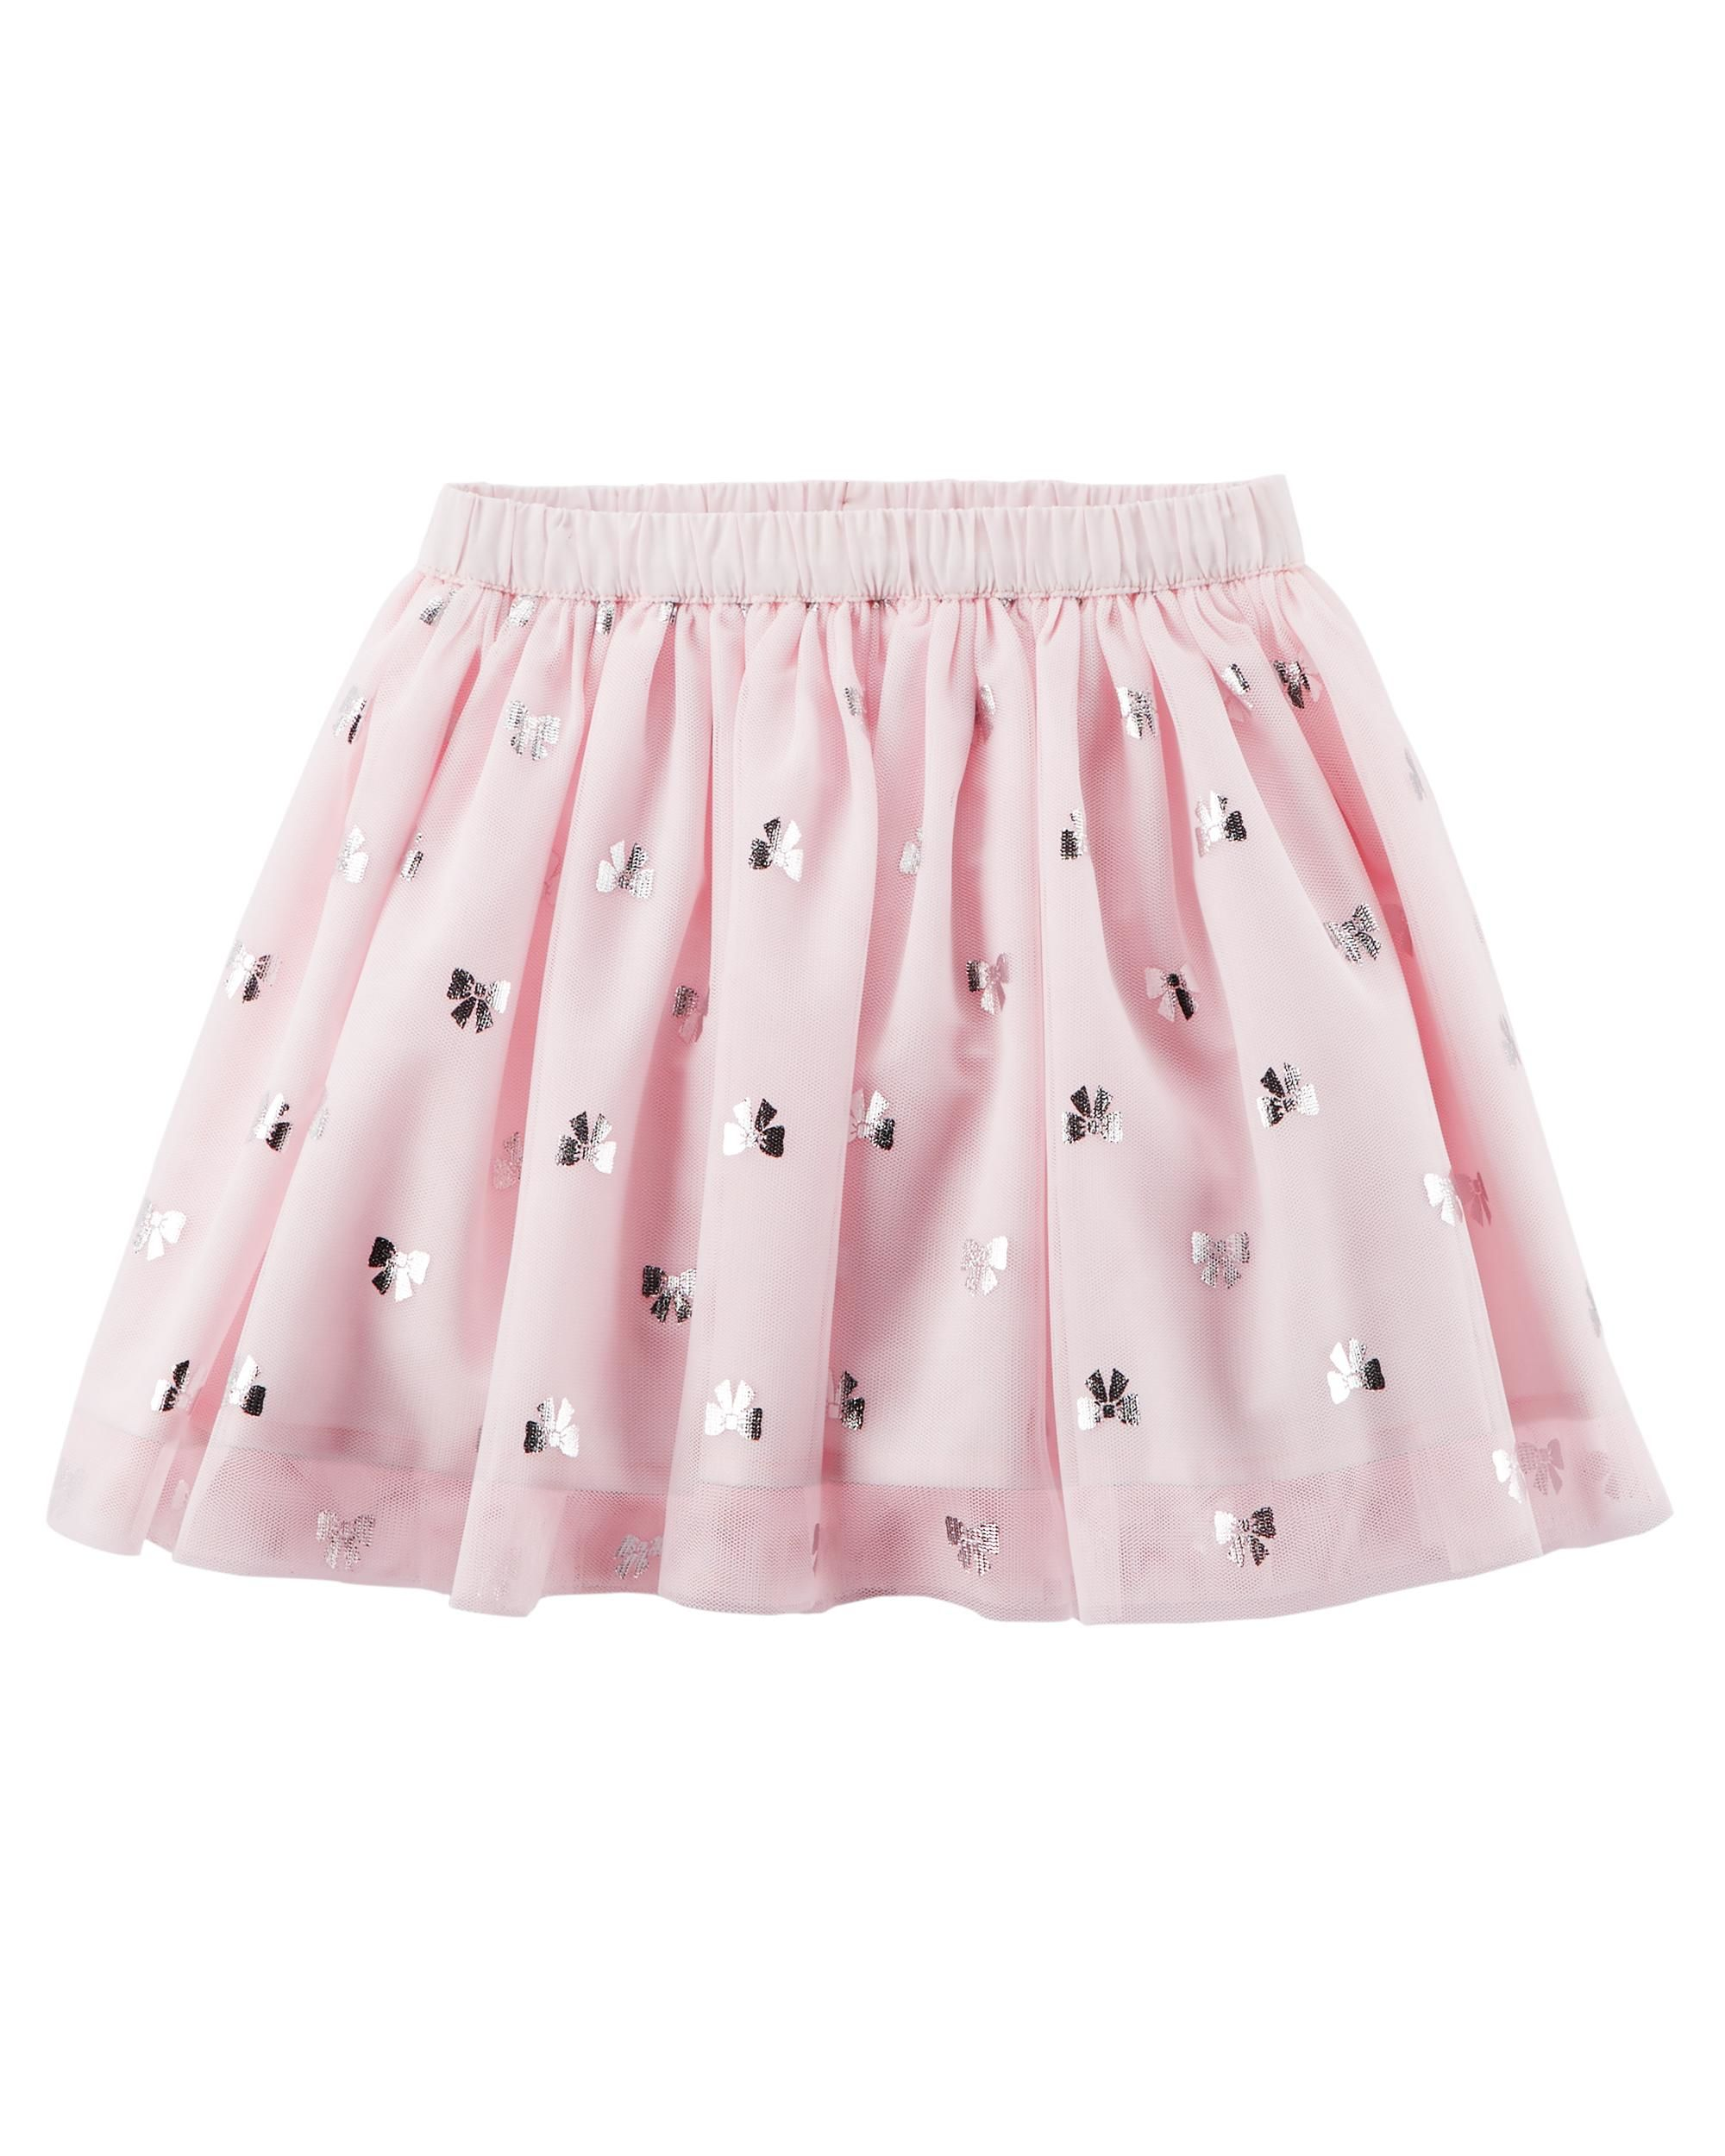 Carter's Baby Girls' Tutu Tulle Bow Pink Skirt - 18 Months